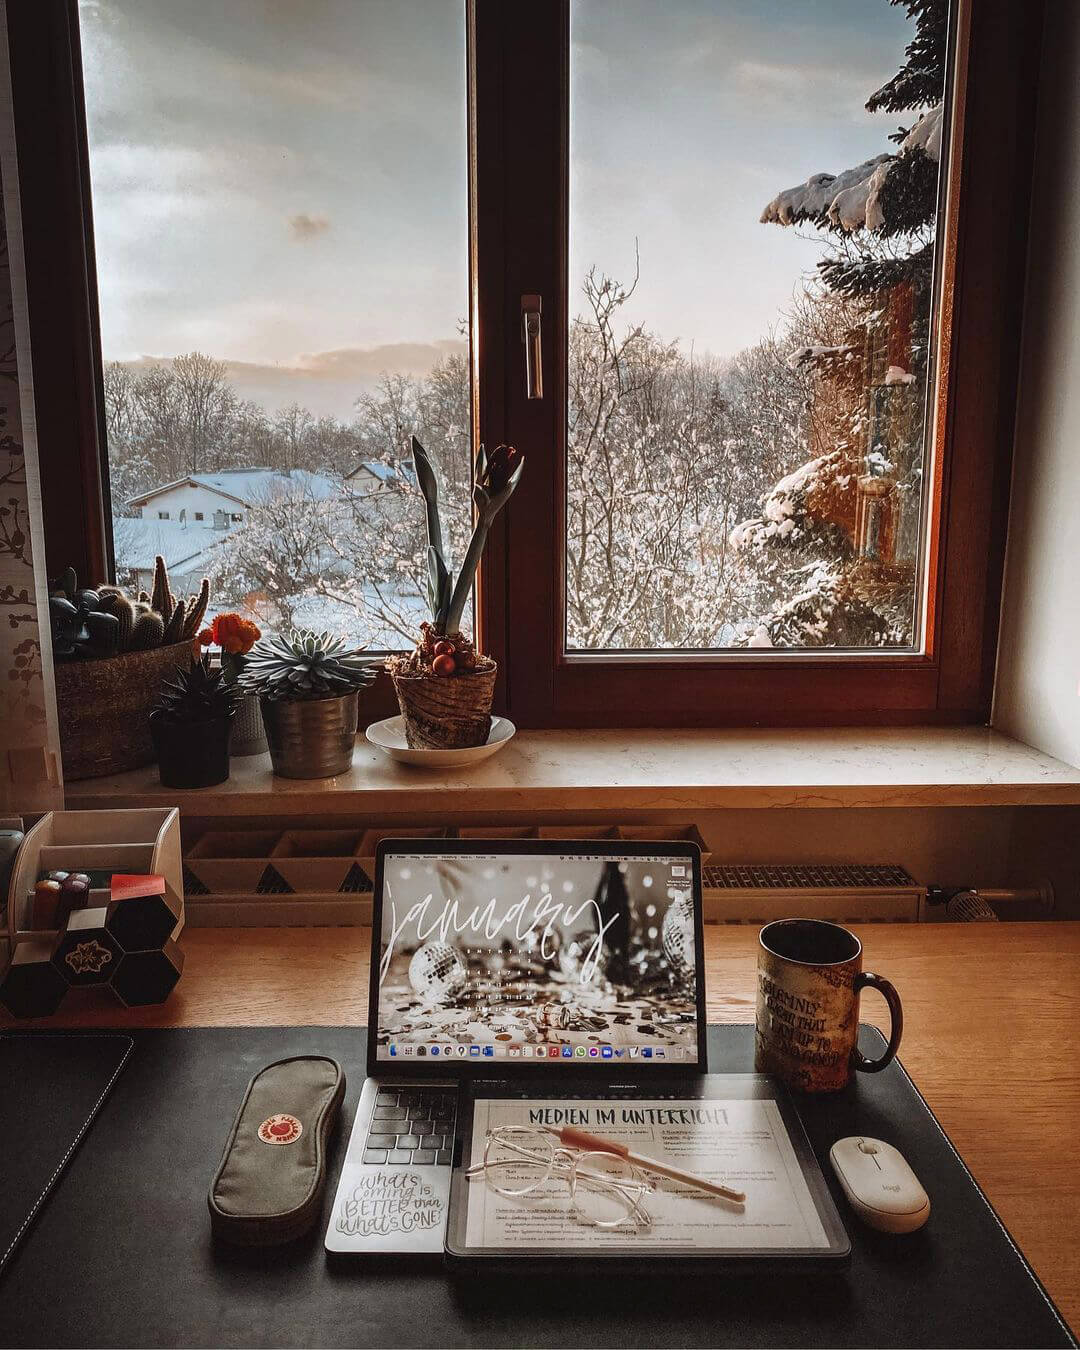 A window in Lisa's study room with an amazing view of the nearby forest